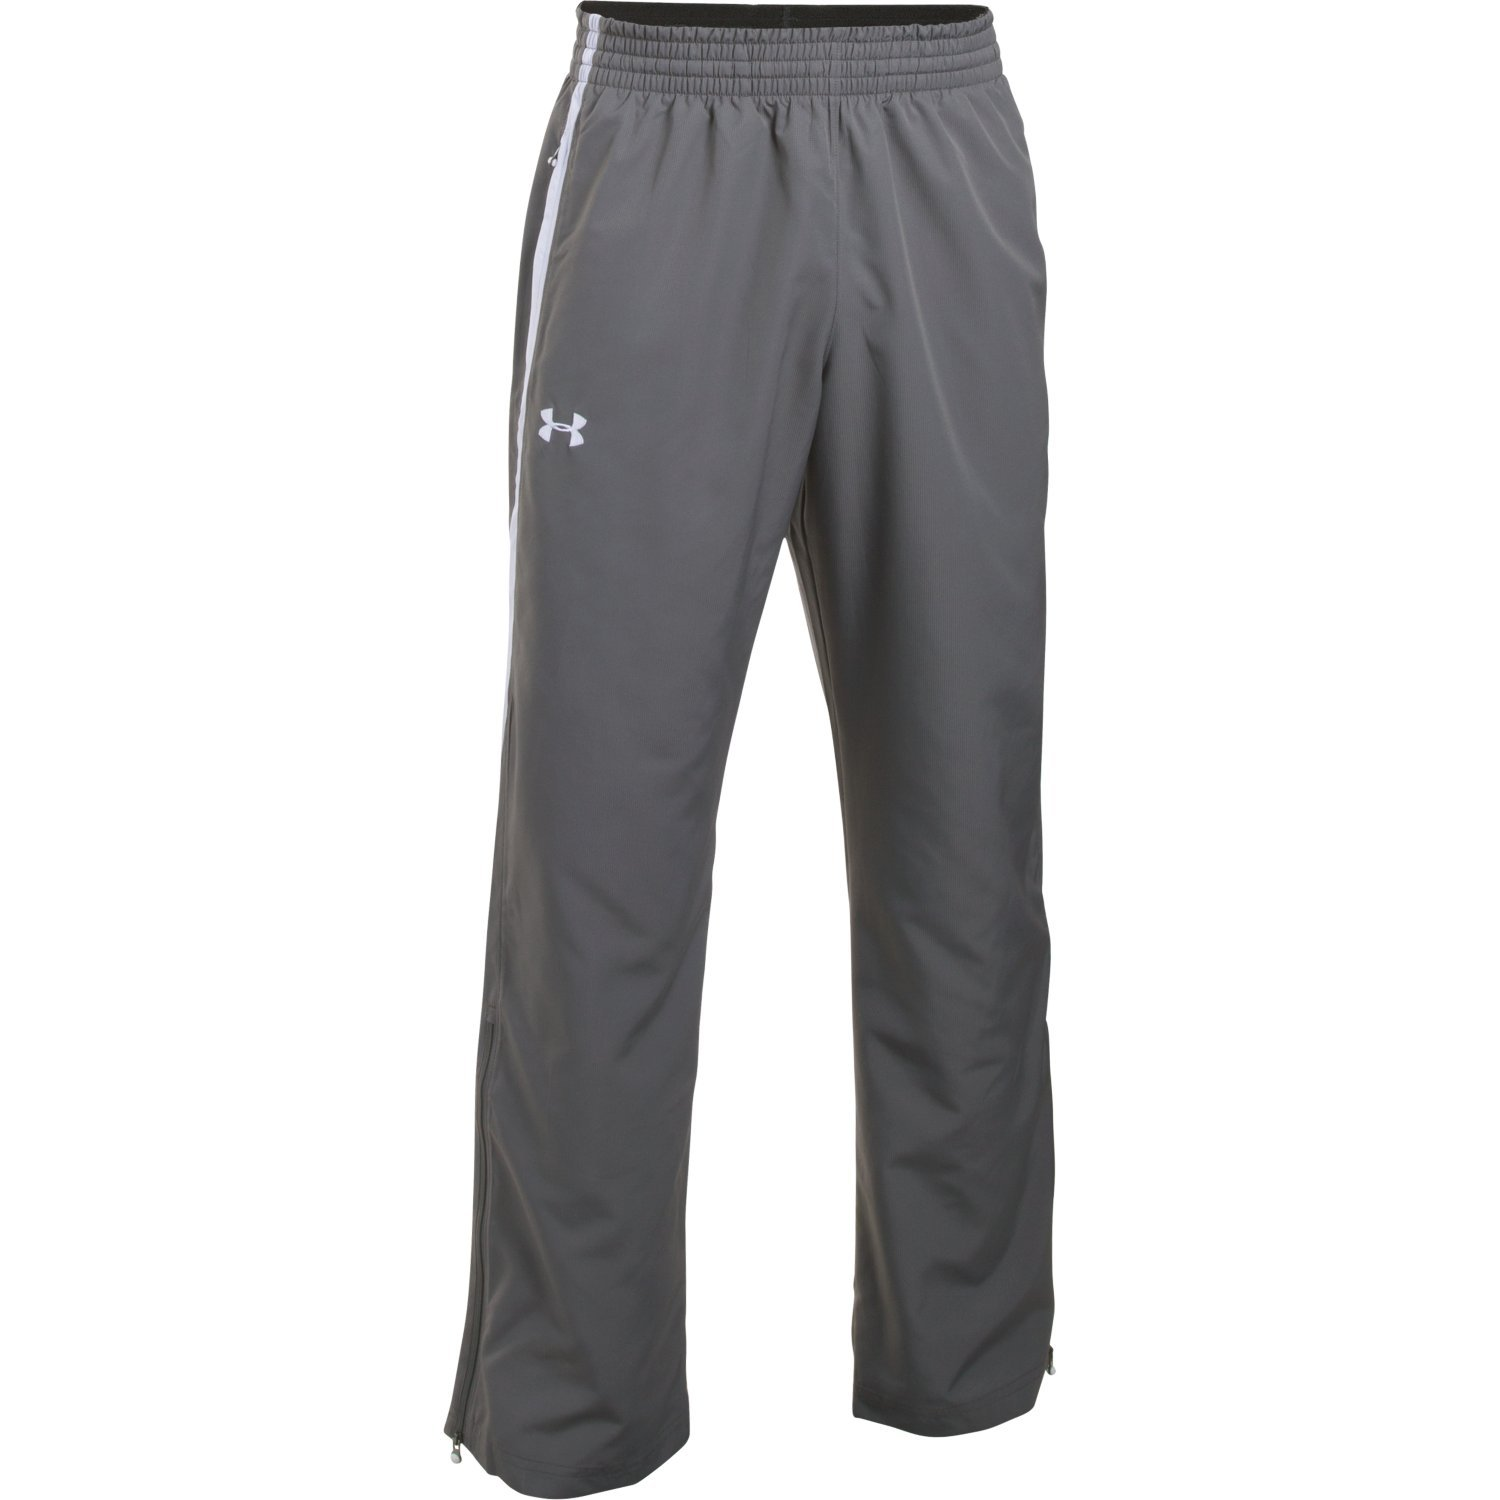 Under Armour Team Essential Woven Men's Warm-Up Pants (Graphite/White, Small)